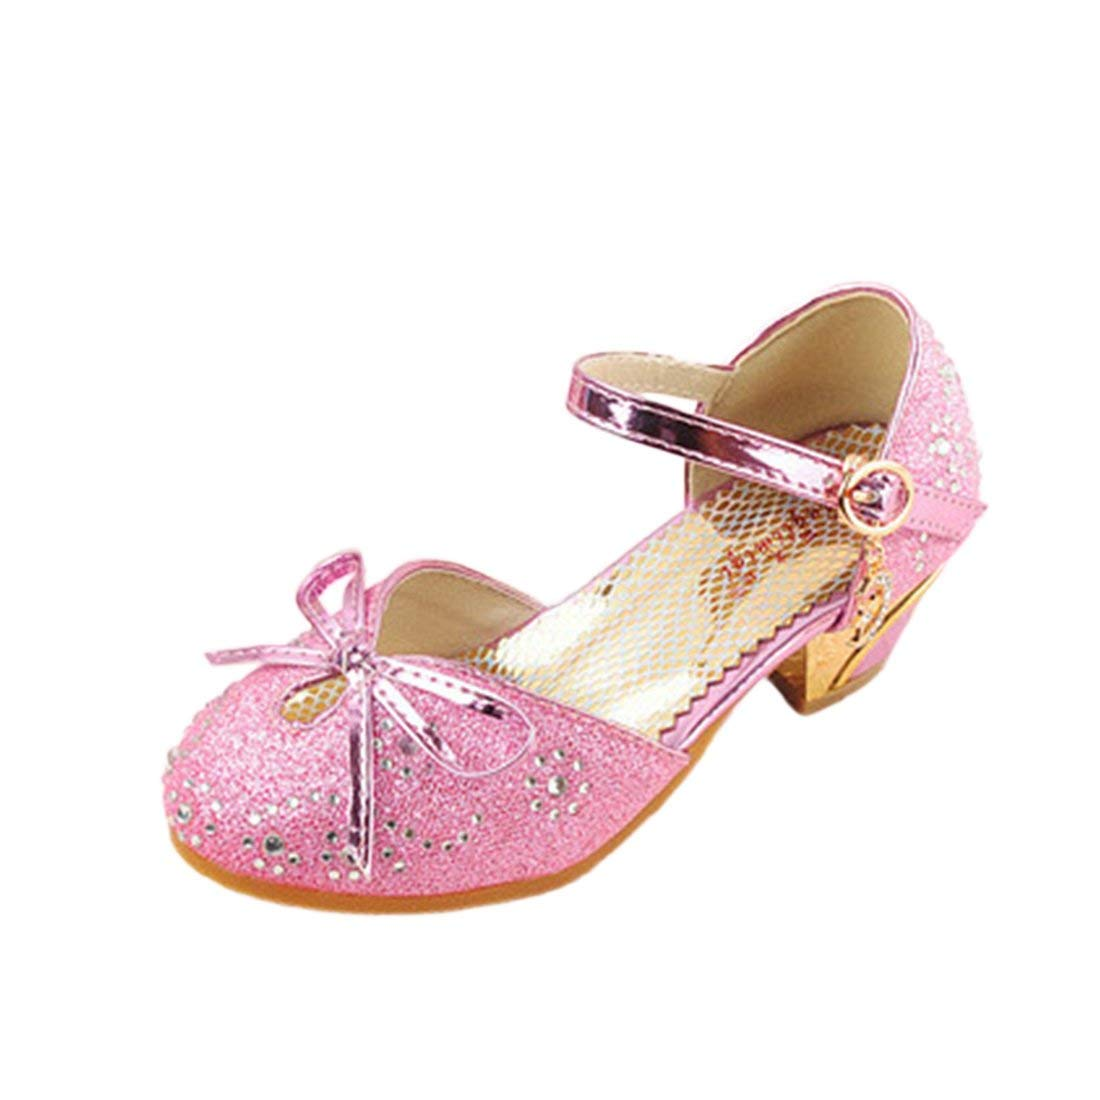 YIBLBOX Girls Kids Toddler Dress up Wedding Cosplay Princess Shoes Glitter Mary Jane Low Heel Shoes